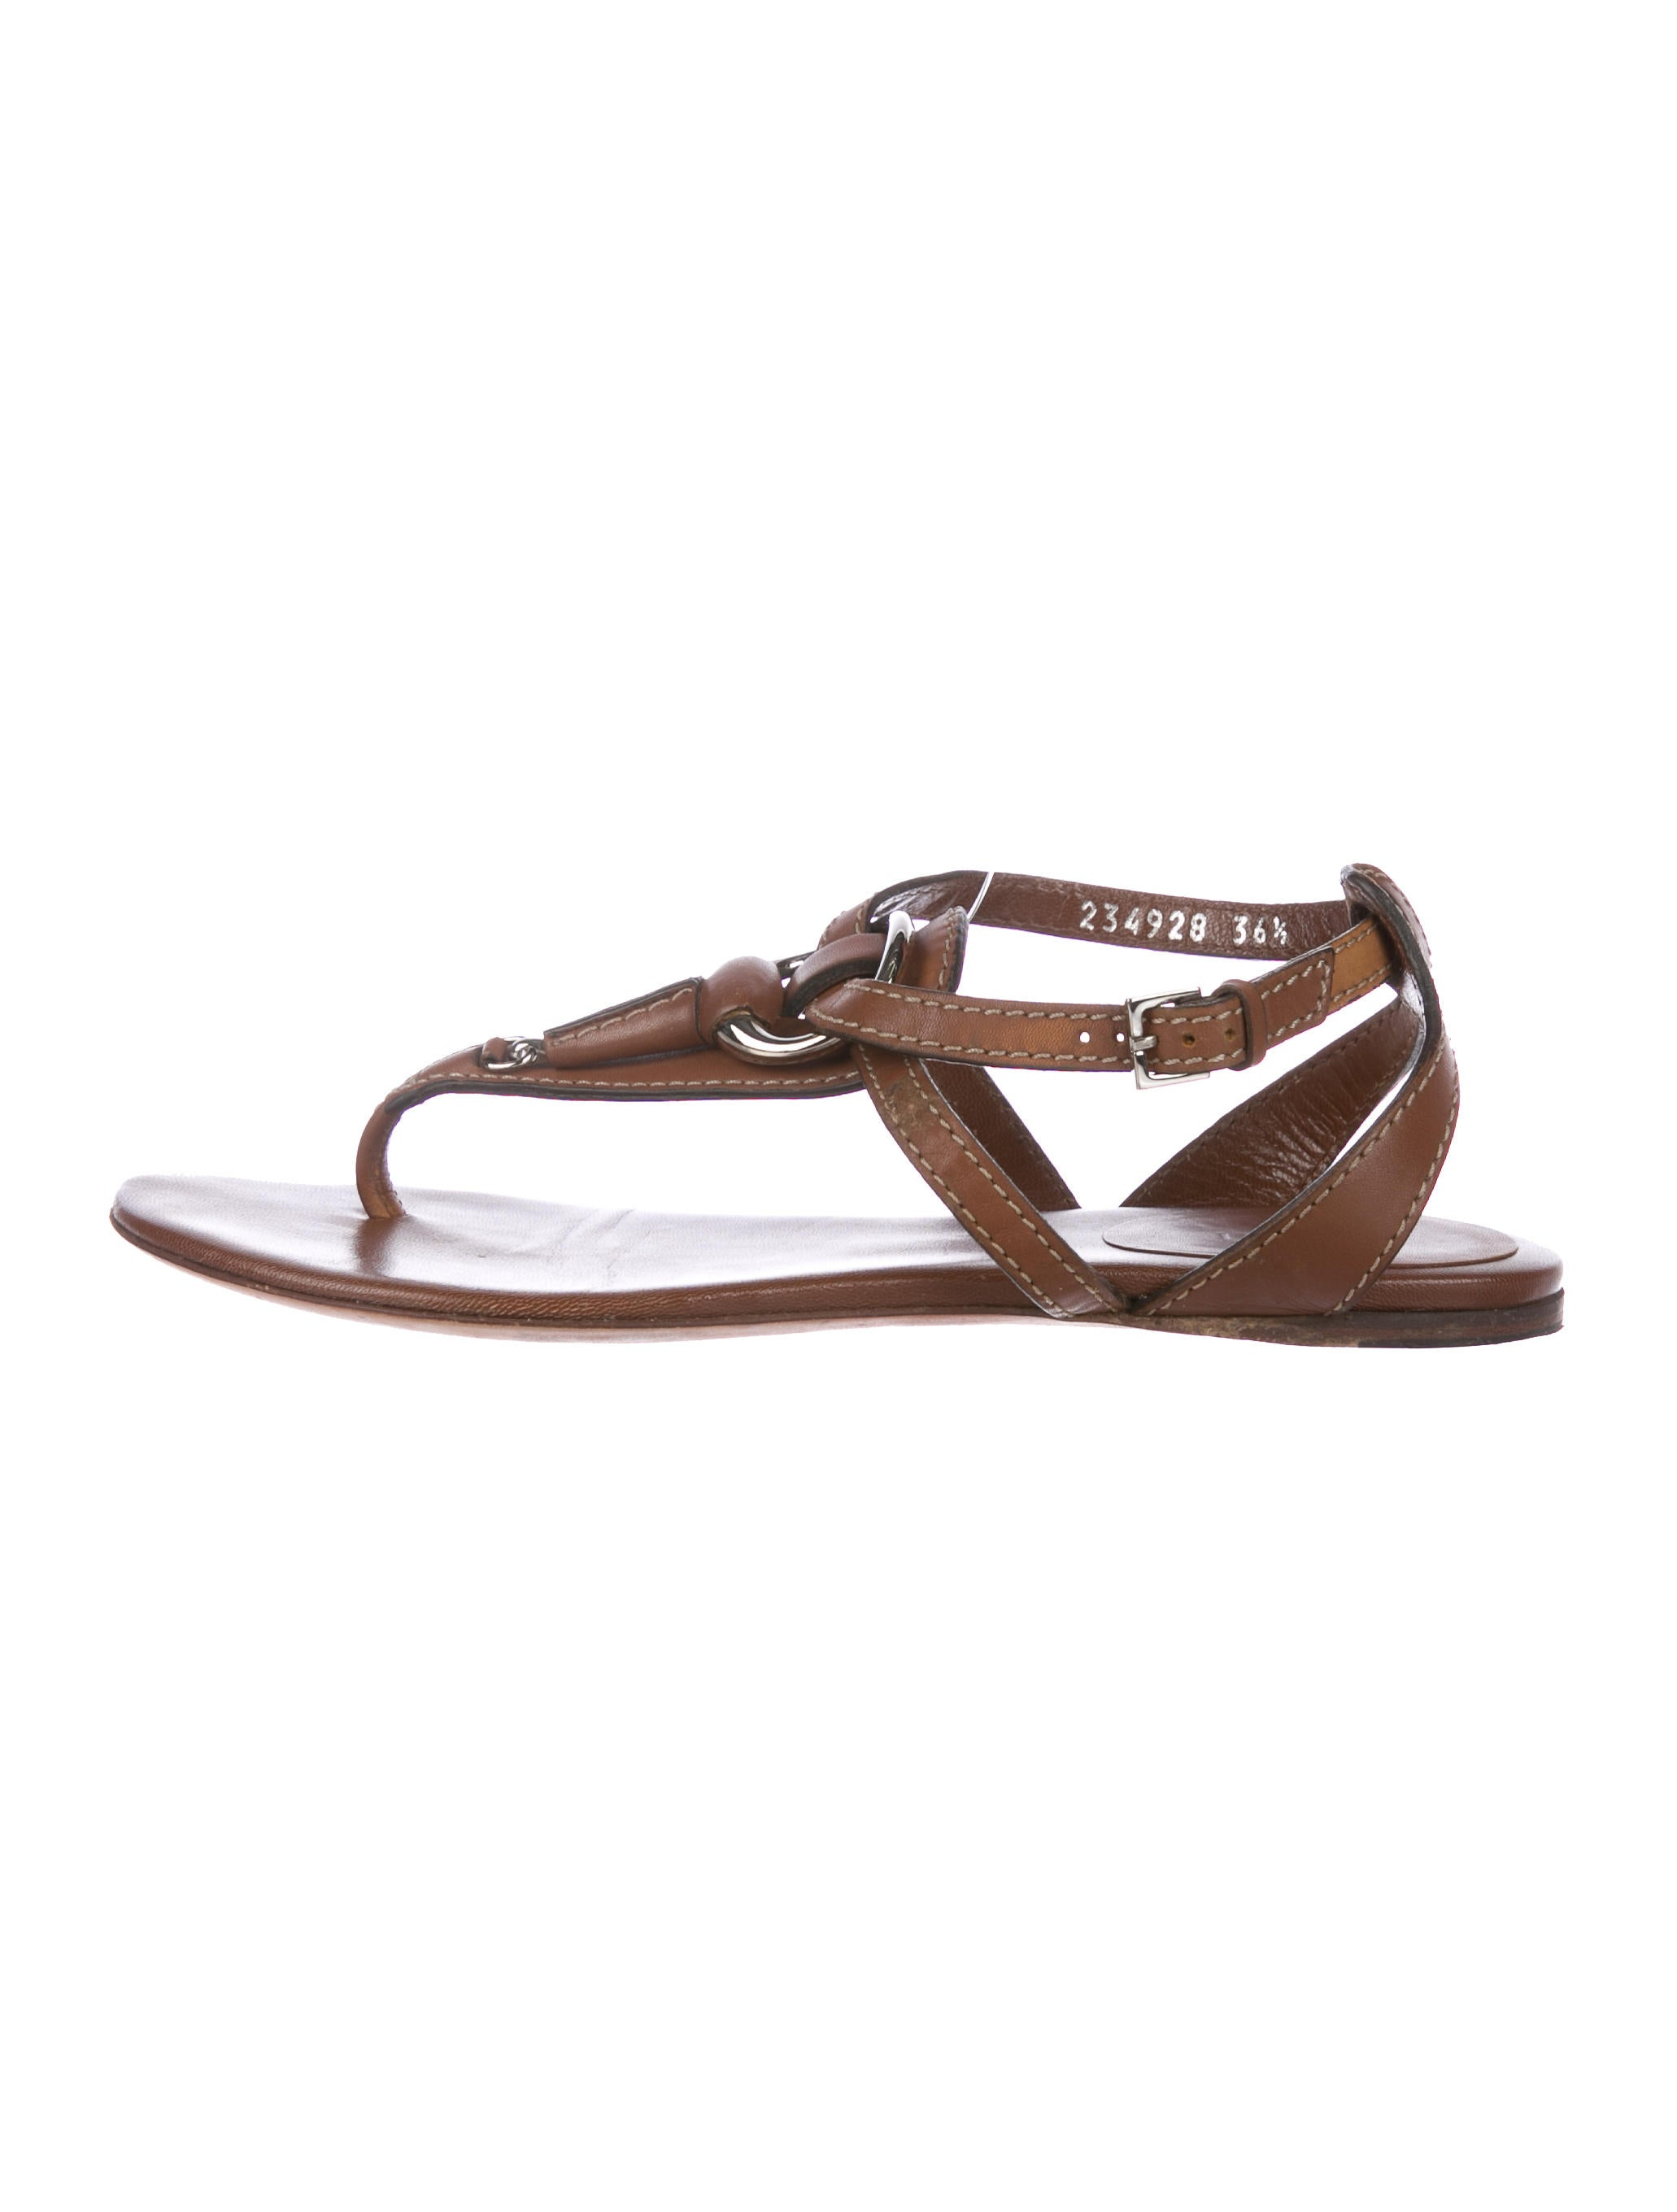 8f523fe5c Gucci Horsebit Thong Sandals - Shoes - GUC214983